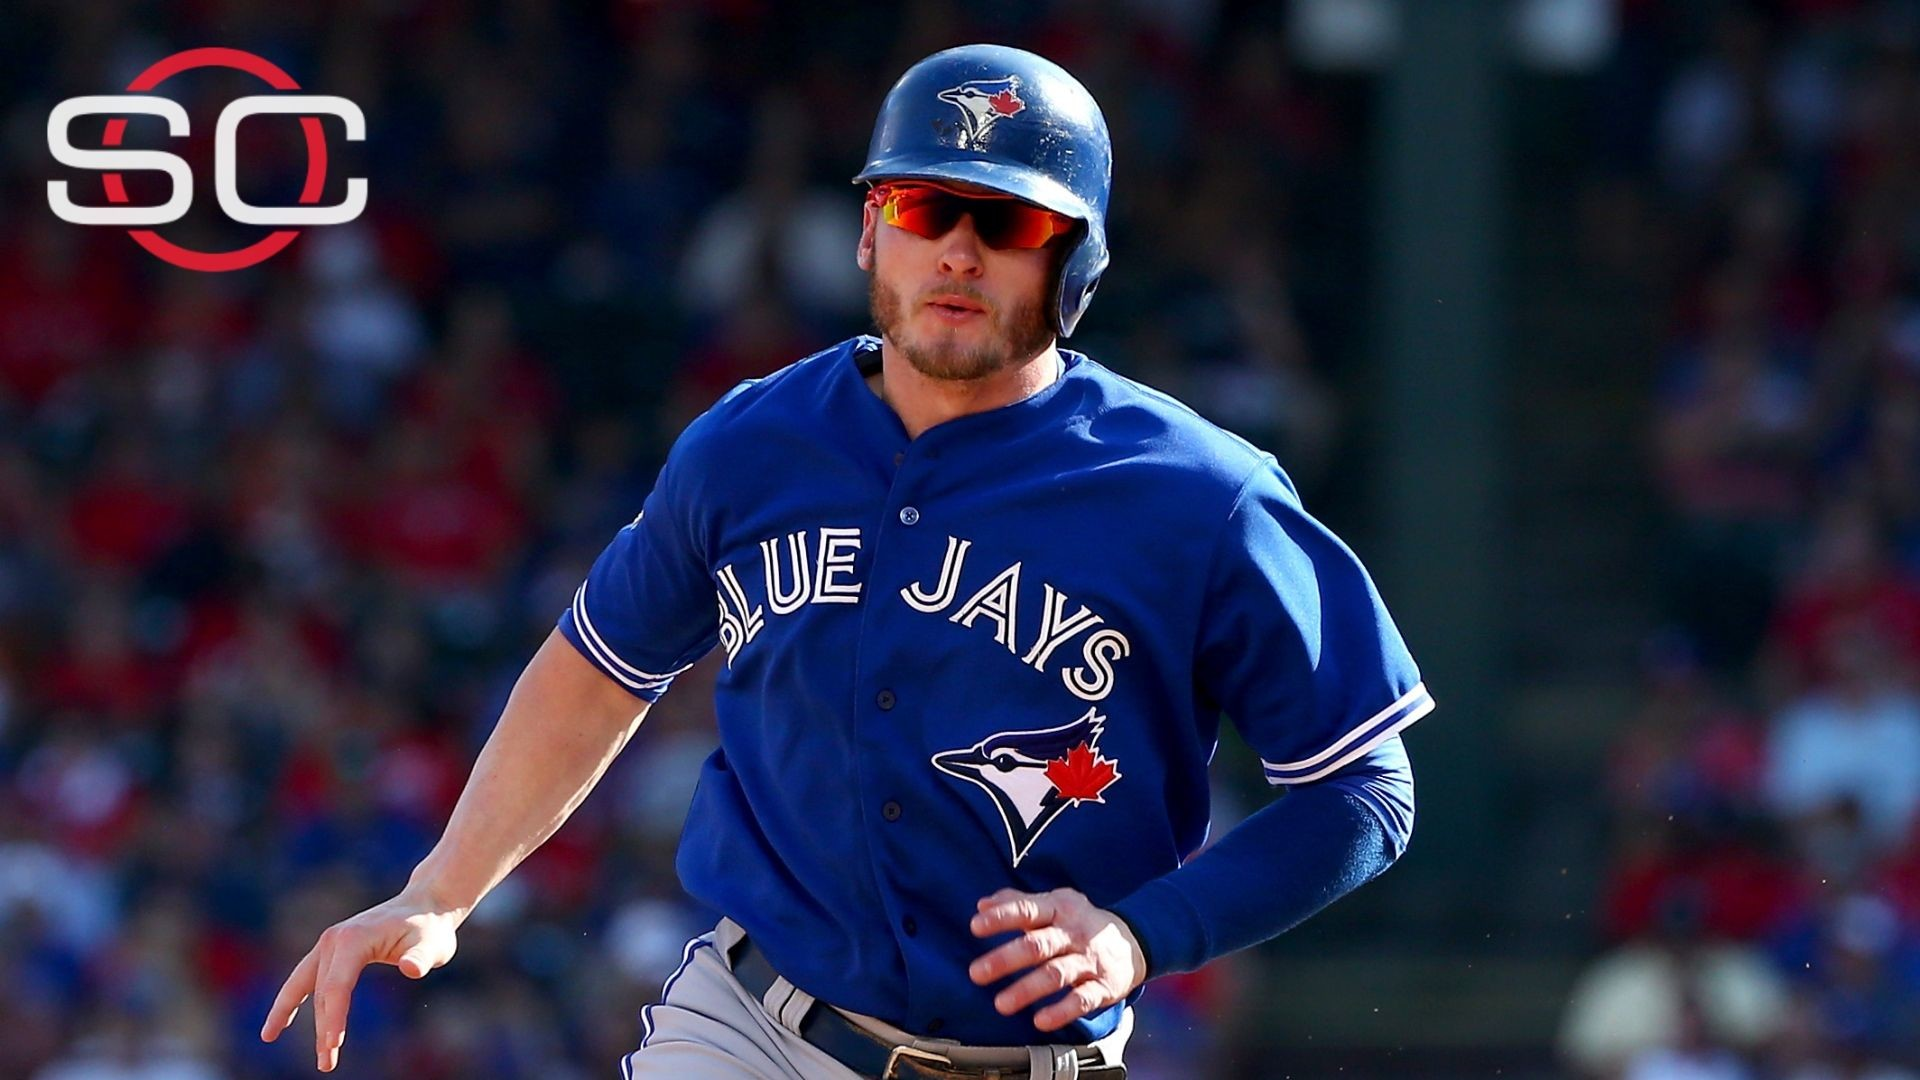 1920x1080 Donaldson deal maintains harmony in Jays' organization